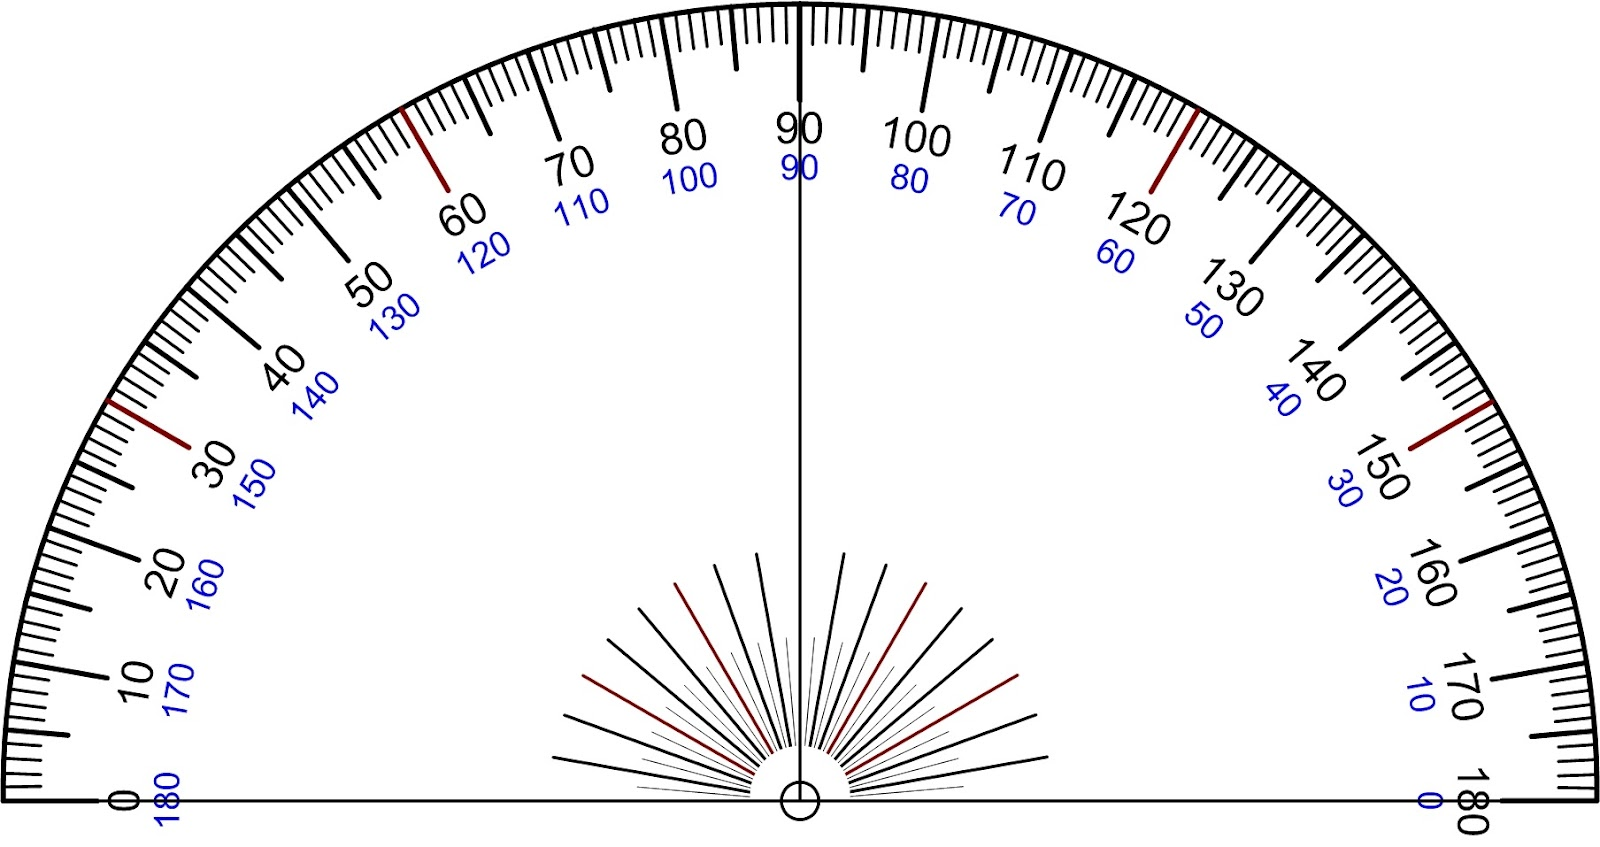 circular protractor template - median don steward mathematics teaching protractor